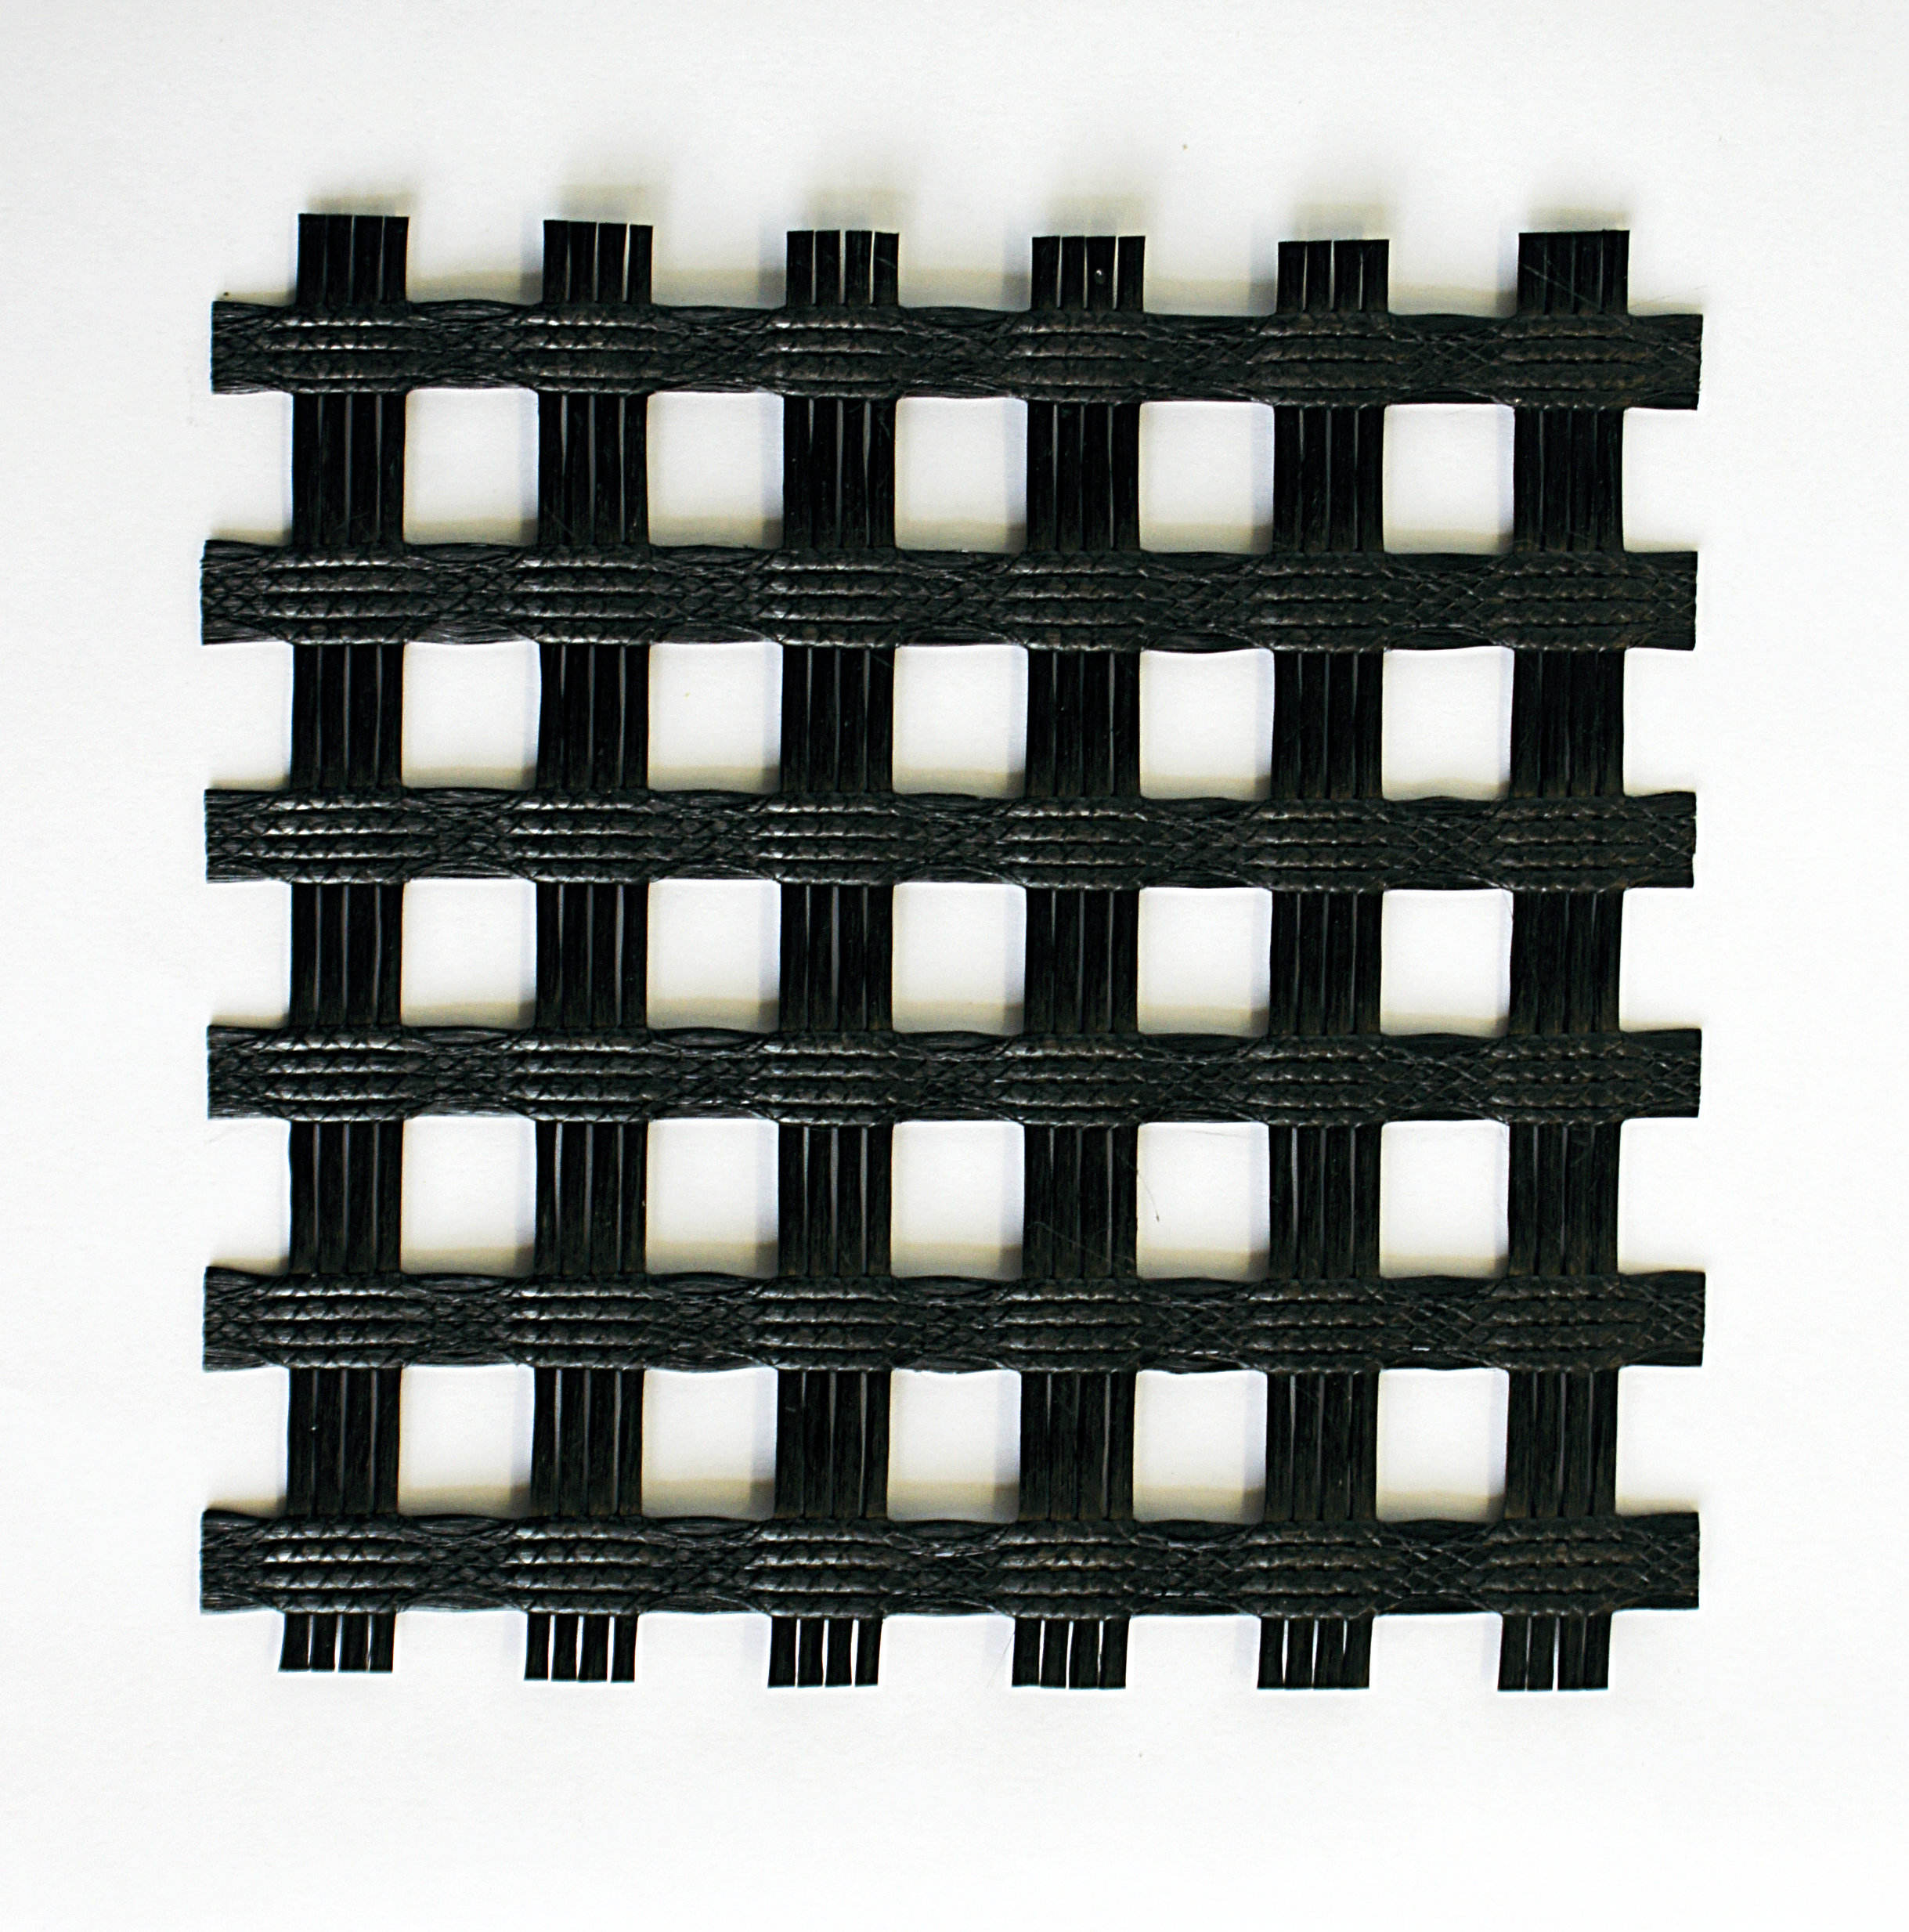 OEM&ODM fiberglass geogrid with nonwoven geotextile for road construction